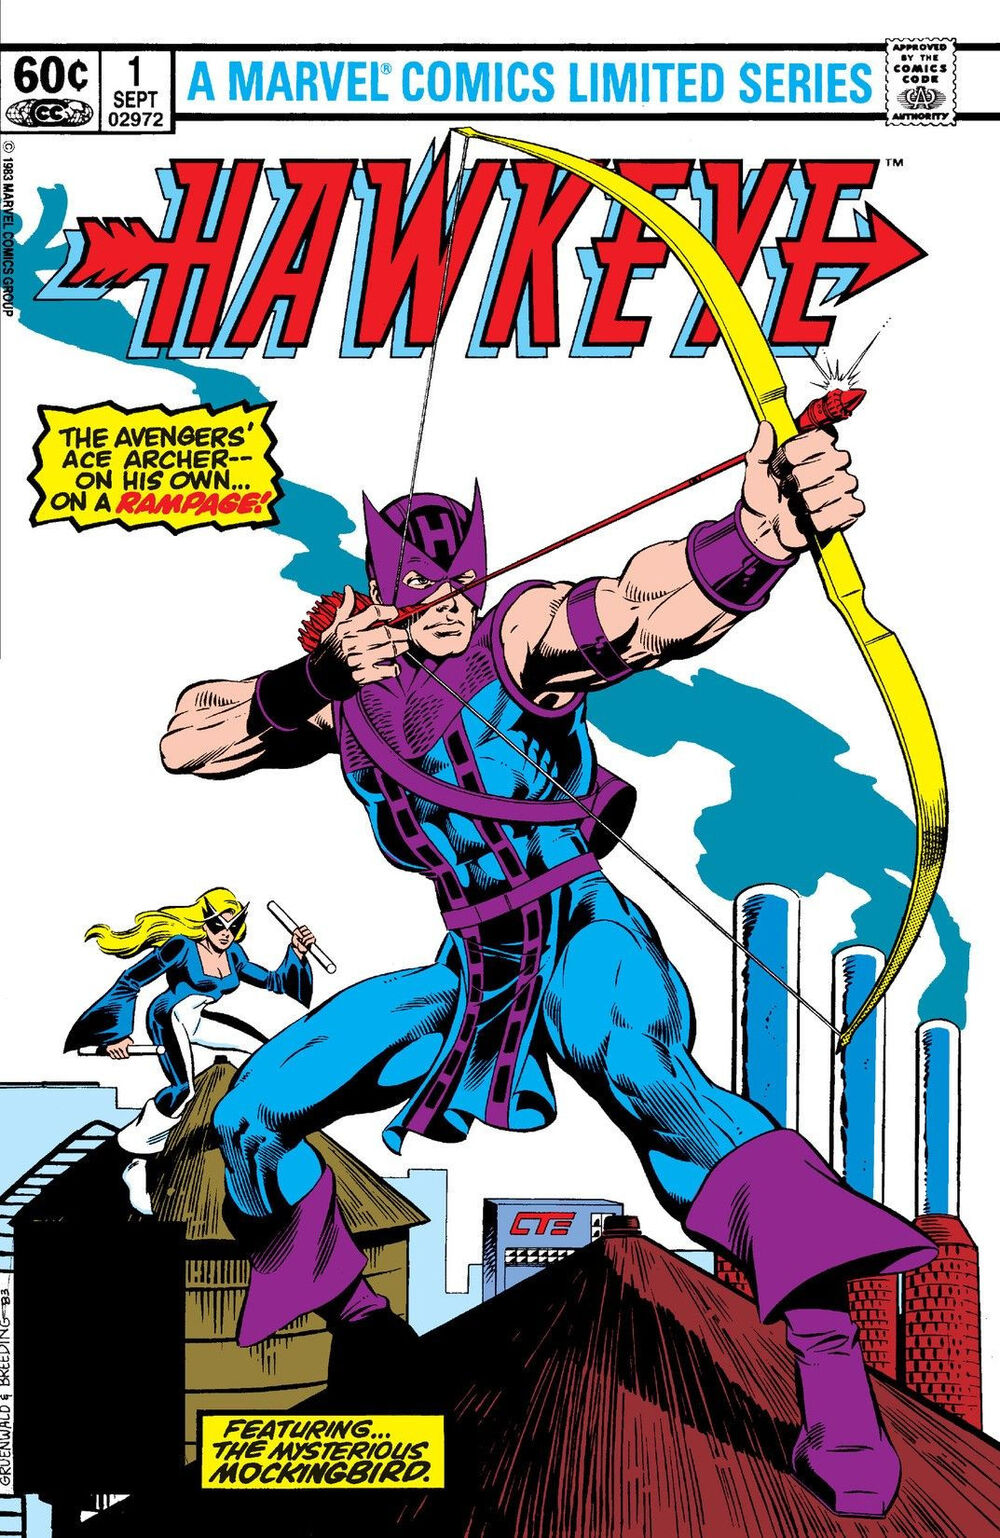 <div>Retro Reviews: Hawkeye #1-4 By Gruenwald & Others For Marvel Comics</div>